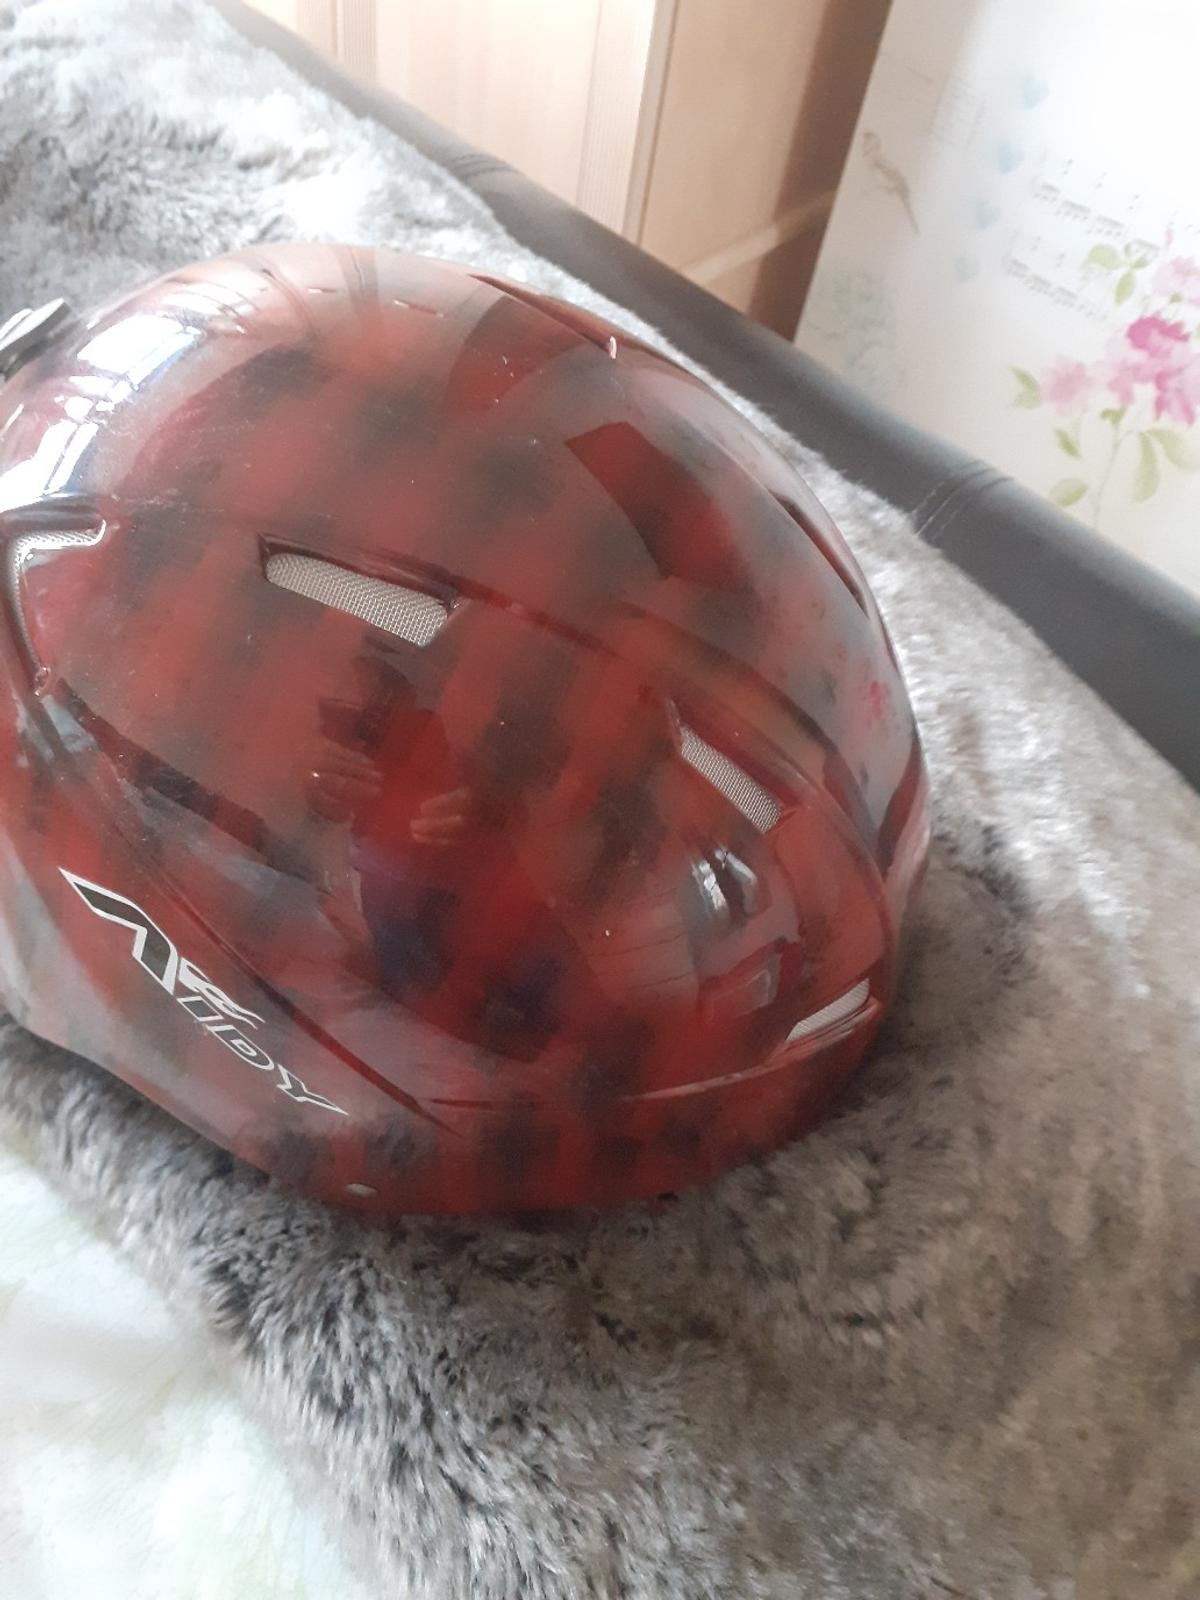 skeeing/skateboard helmet size large new never used could be used for bikes